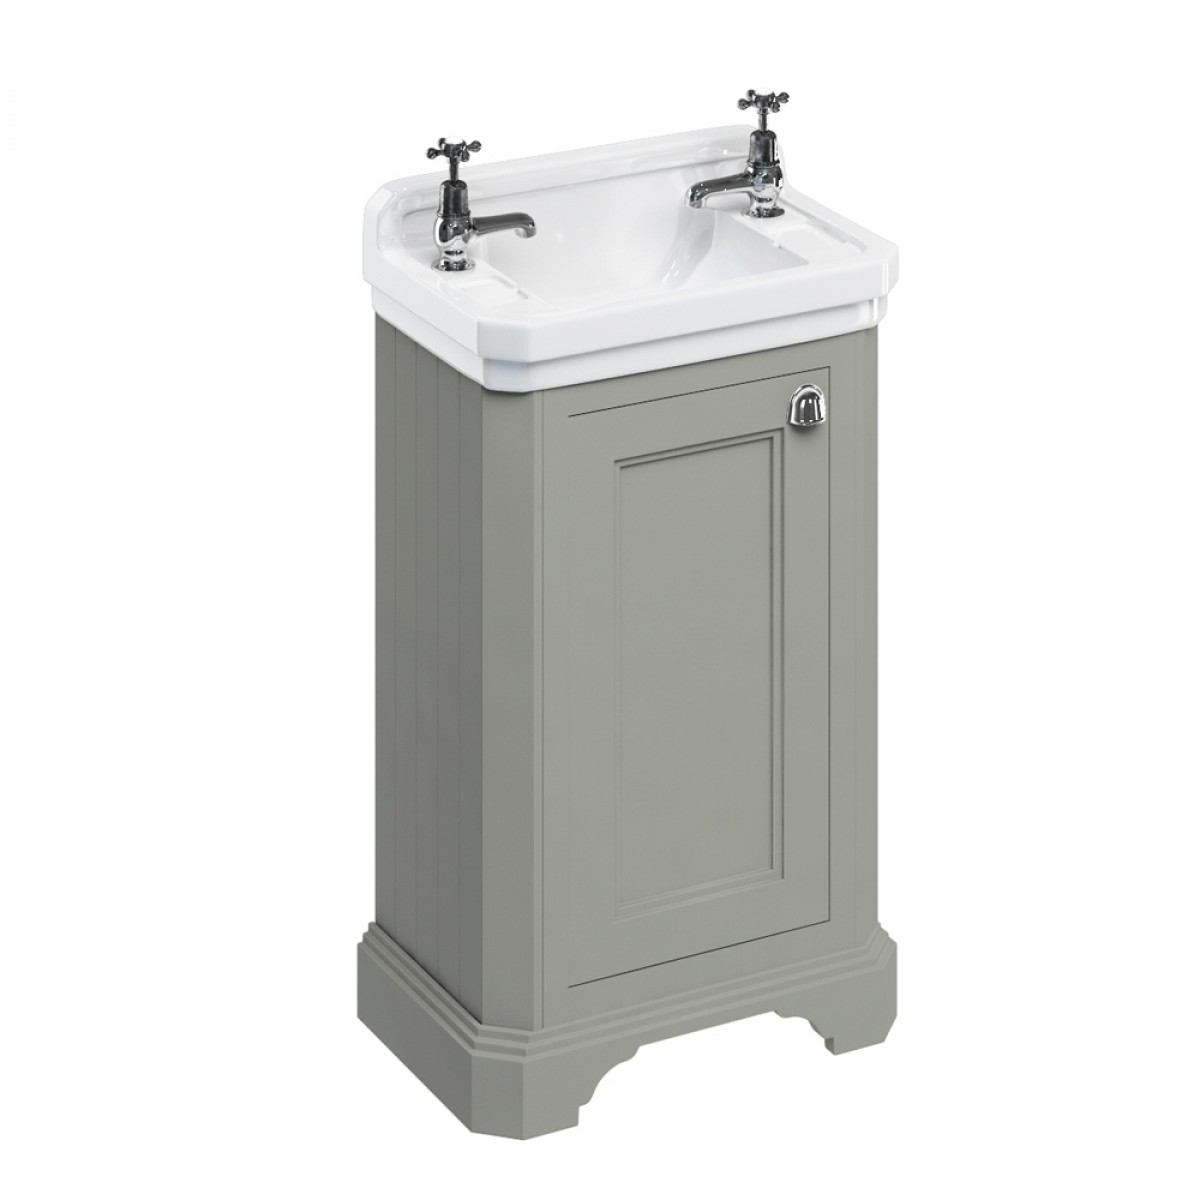 burlington freestanding cloakroom vanity unit with basin RZSFCCV